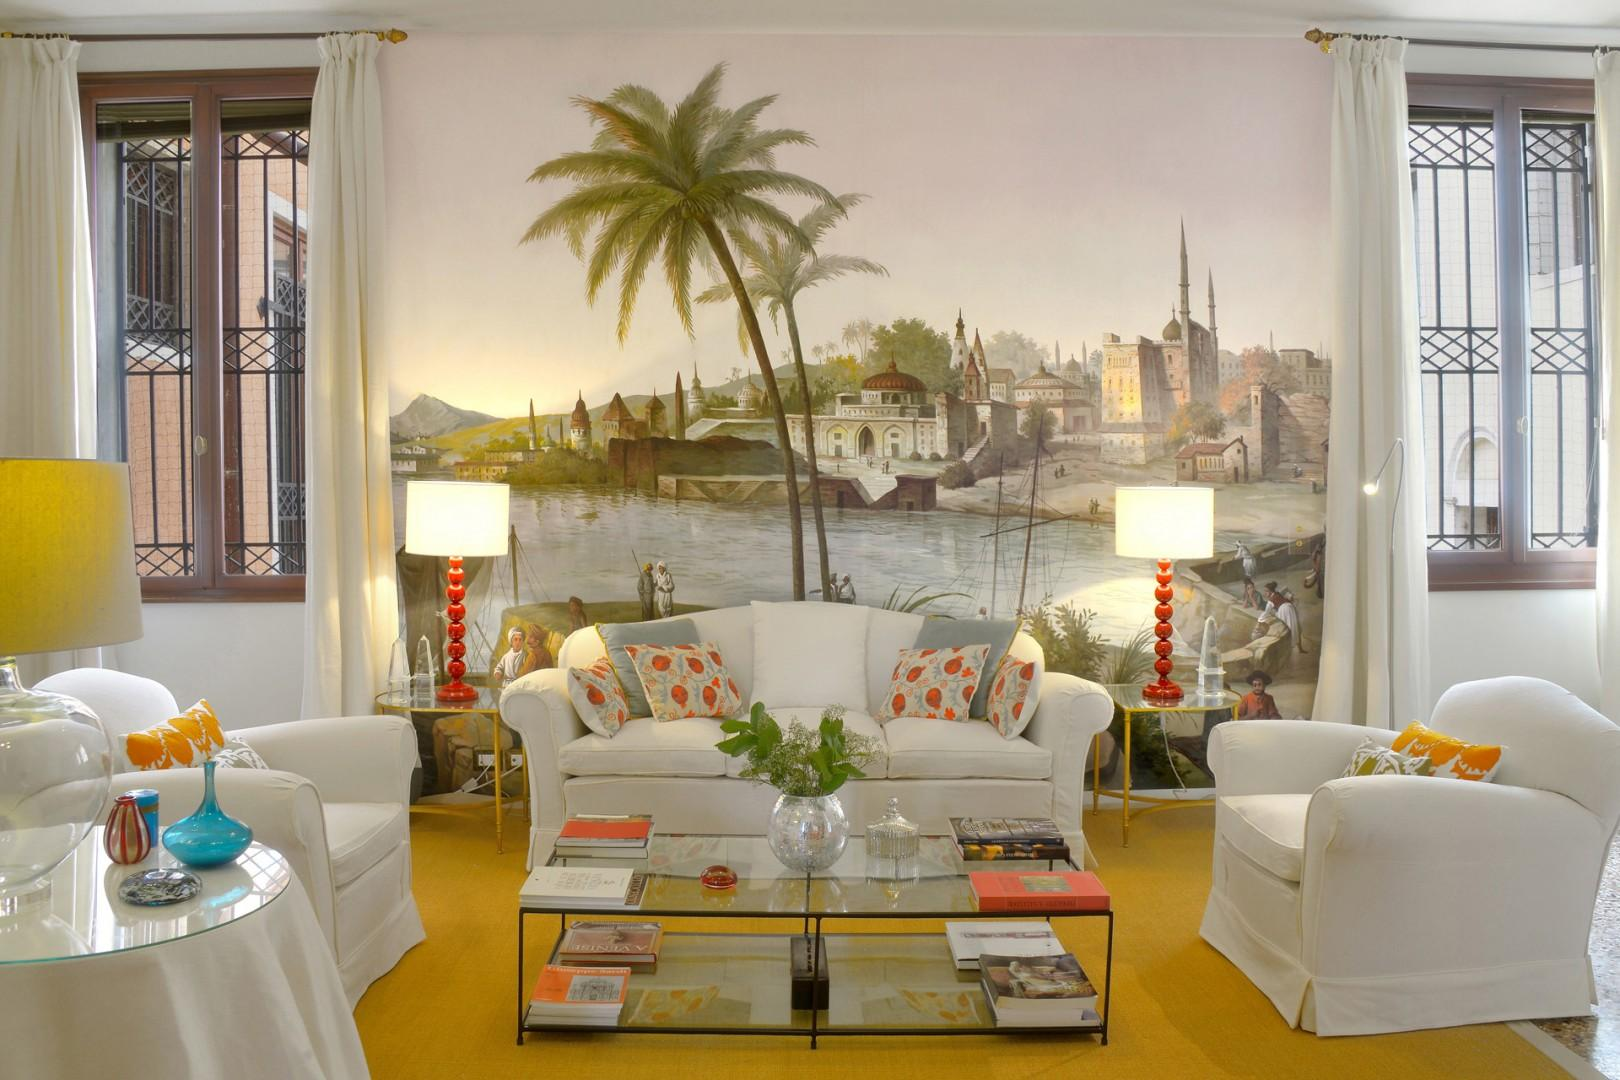 A lovely fresco in the living room sets the tone for the apartment.